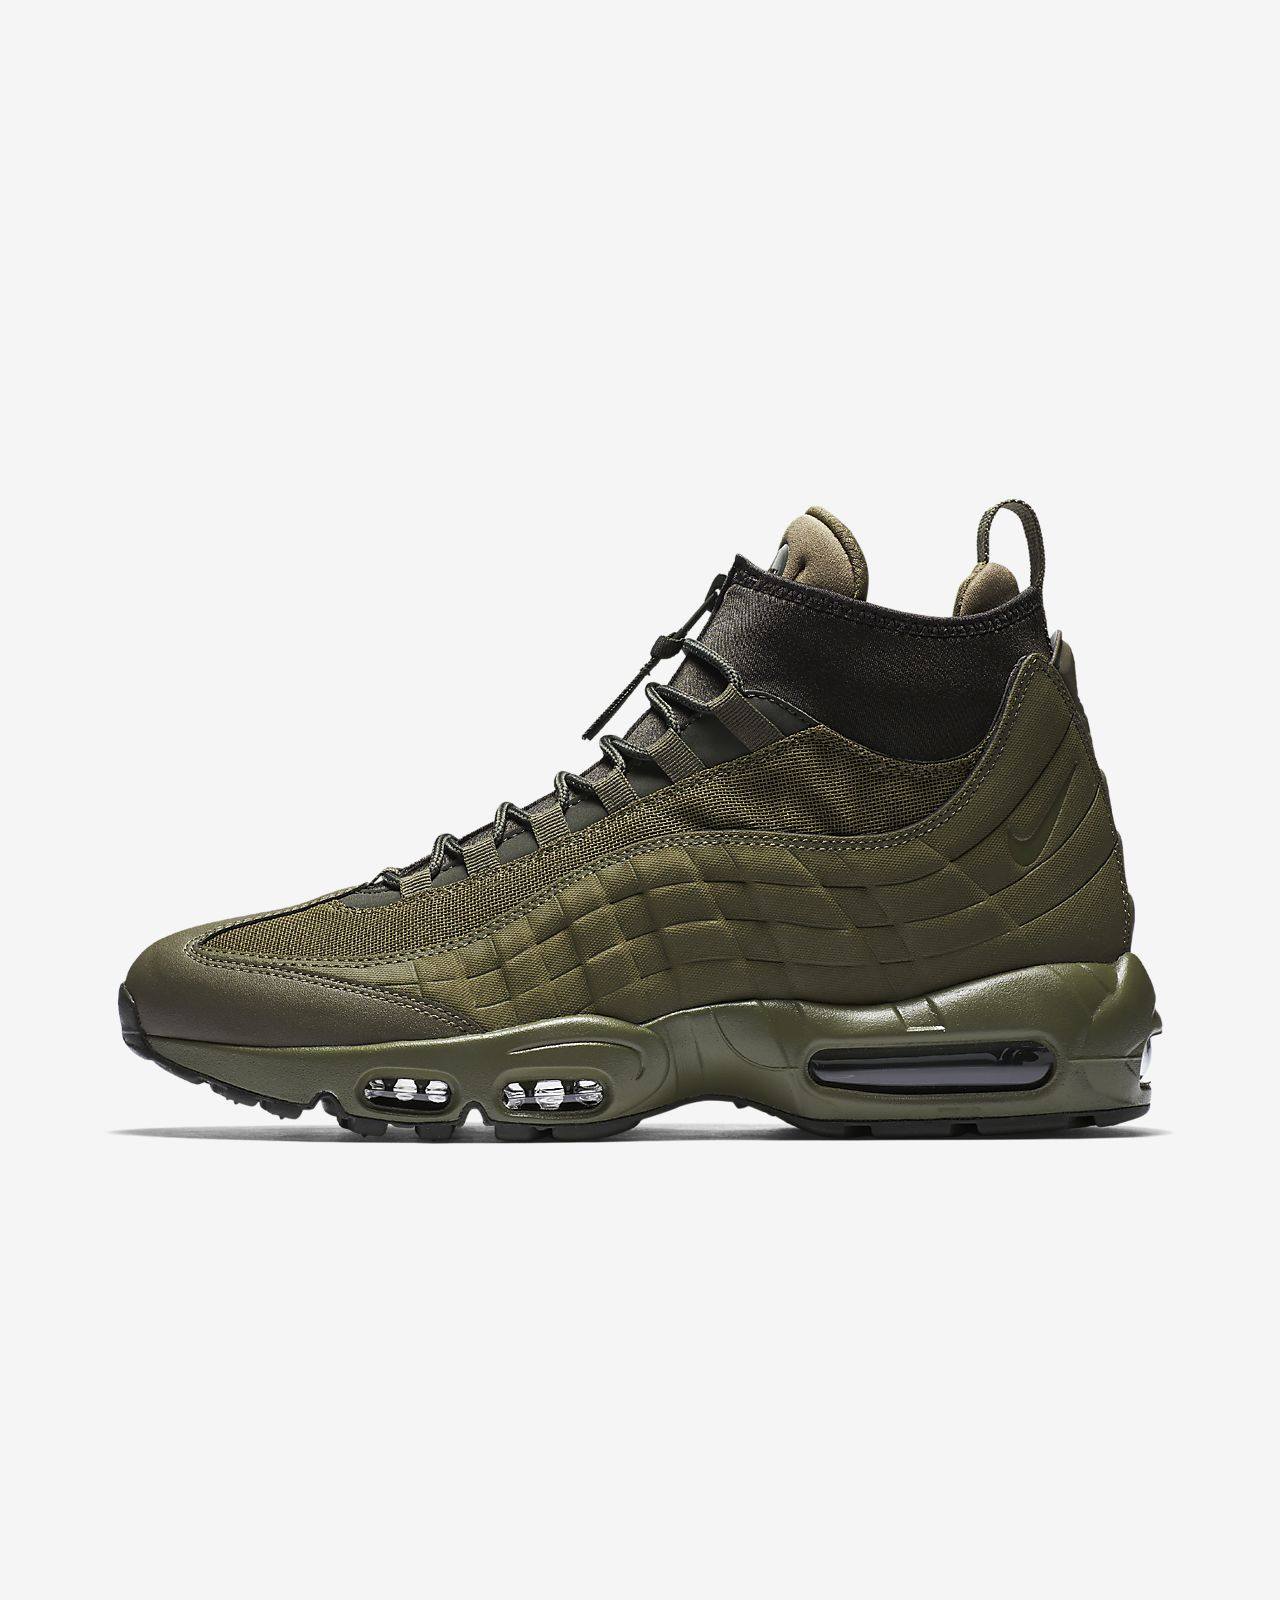 men's nike air max 95 premium running shoes nz